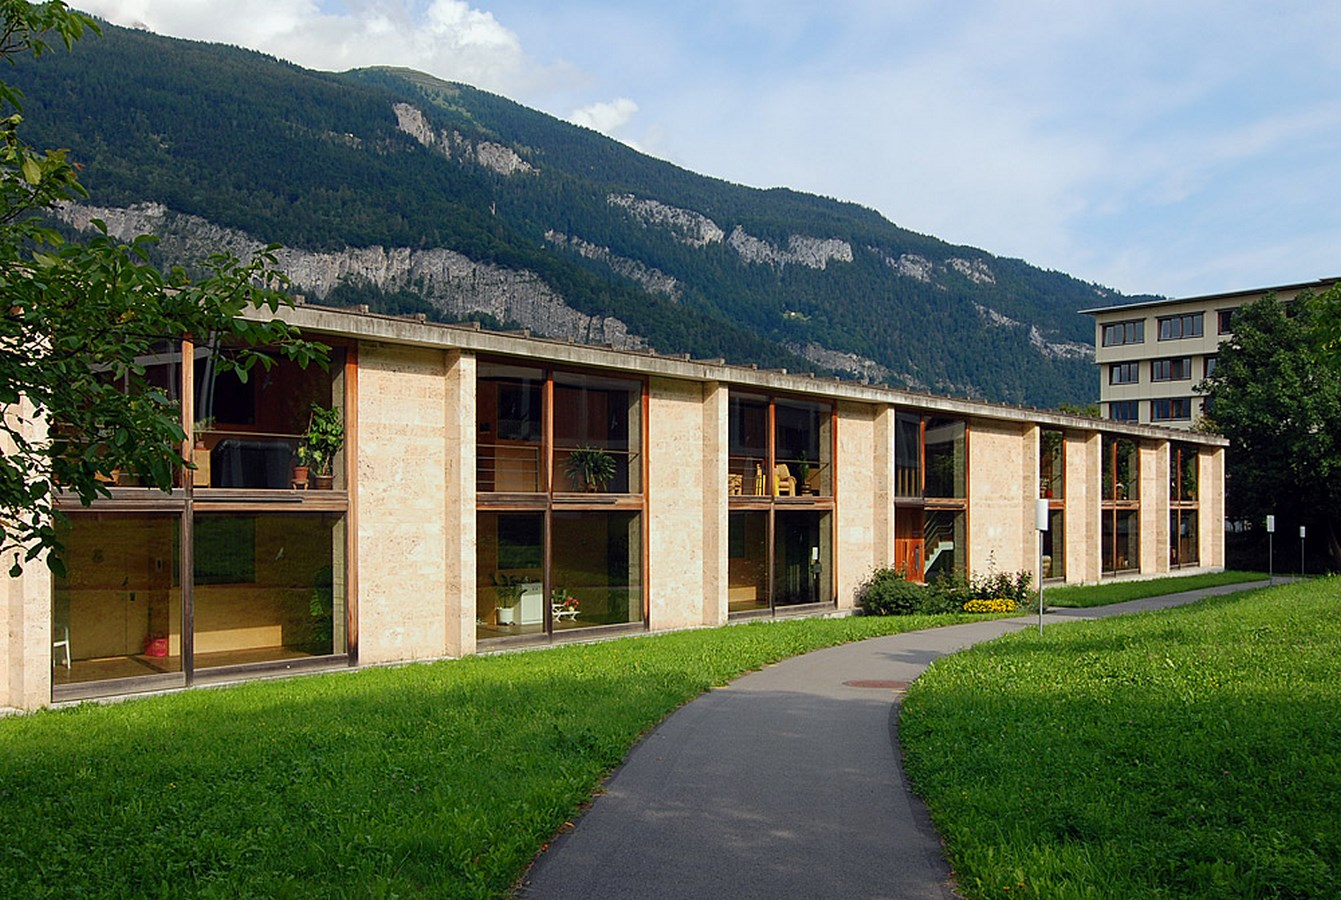 View of linear building - Residential Home for the Elderly, Masans